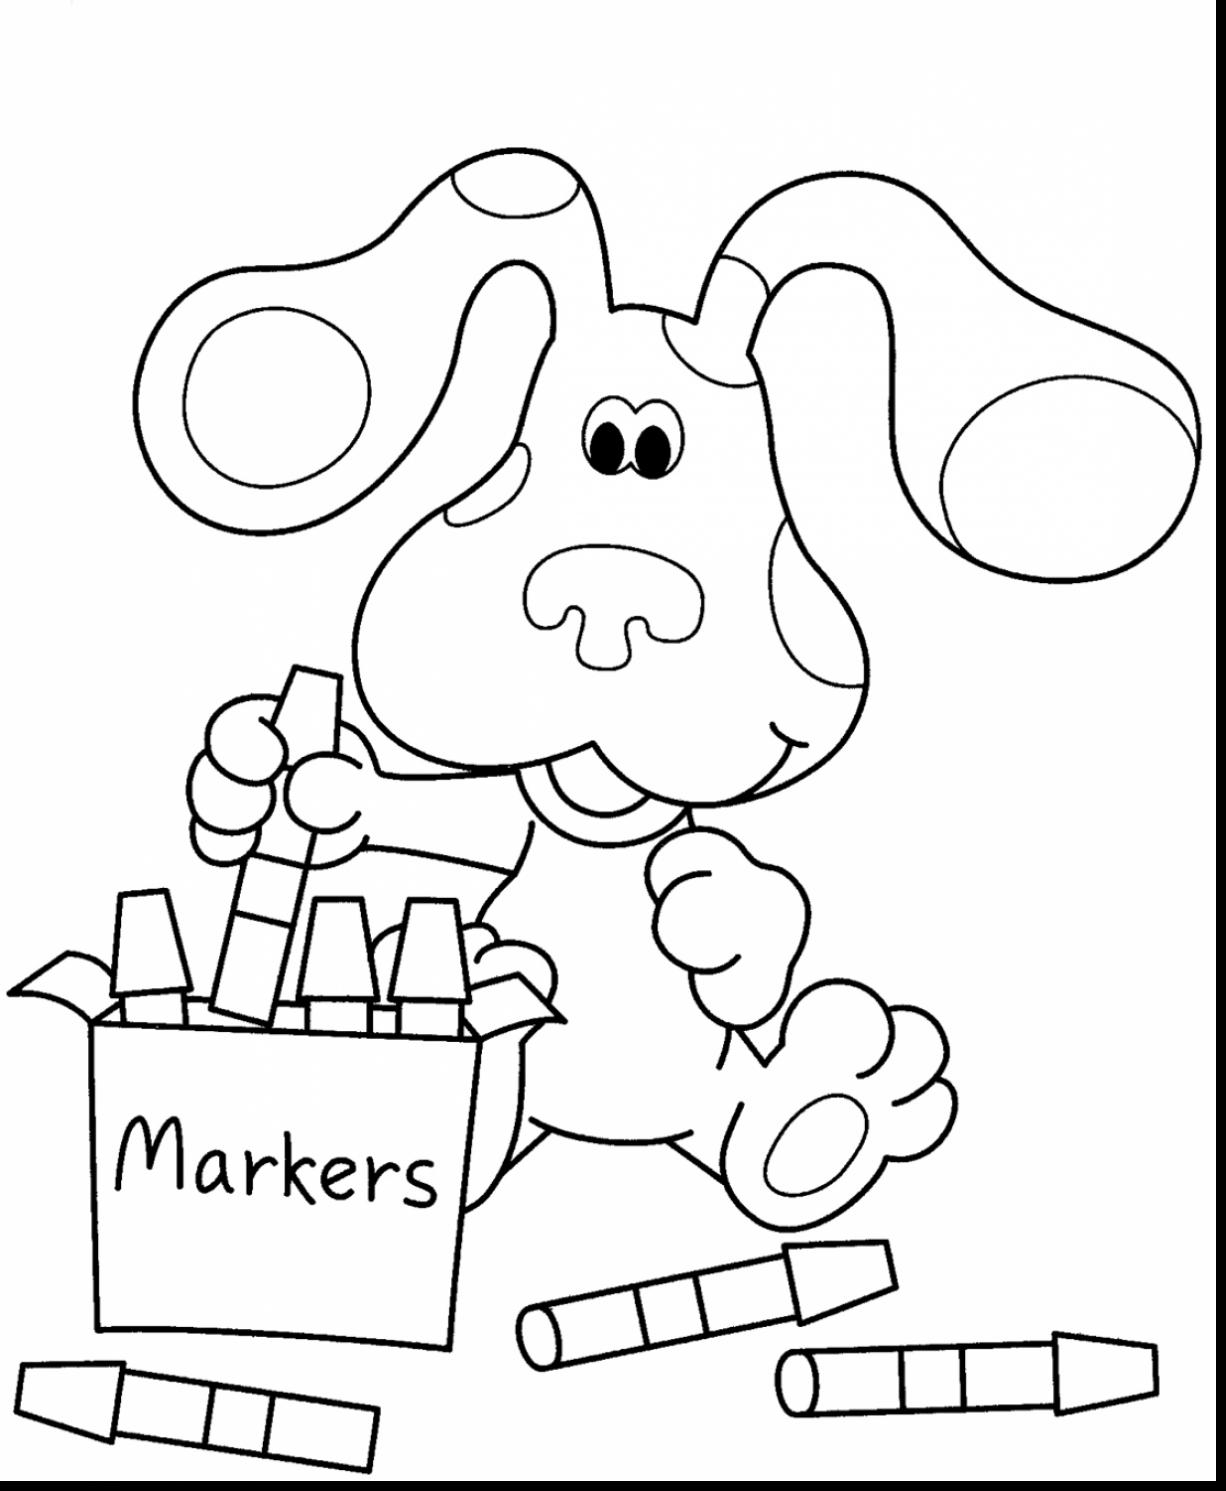 In Nick Jnr Colouring Coloring Gallery Of Nickalodeon Coloring Pages to Print